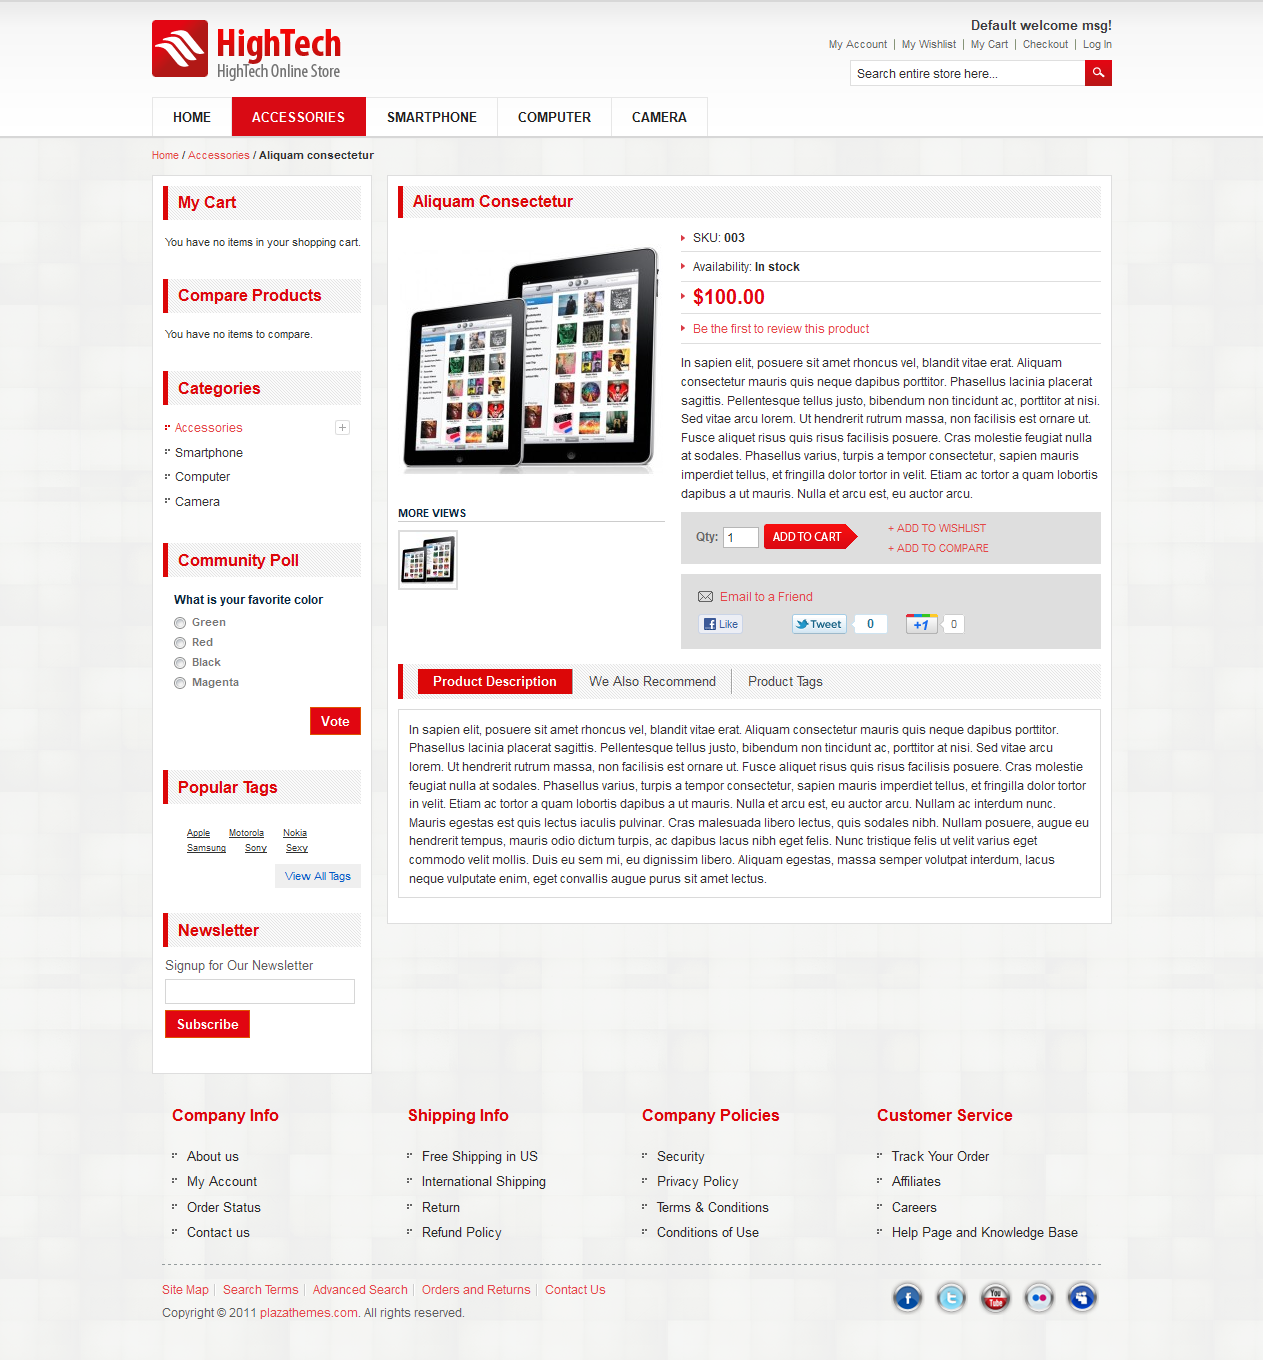 Best-HighTech-Magento-Ecommerce-Theme